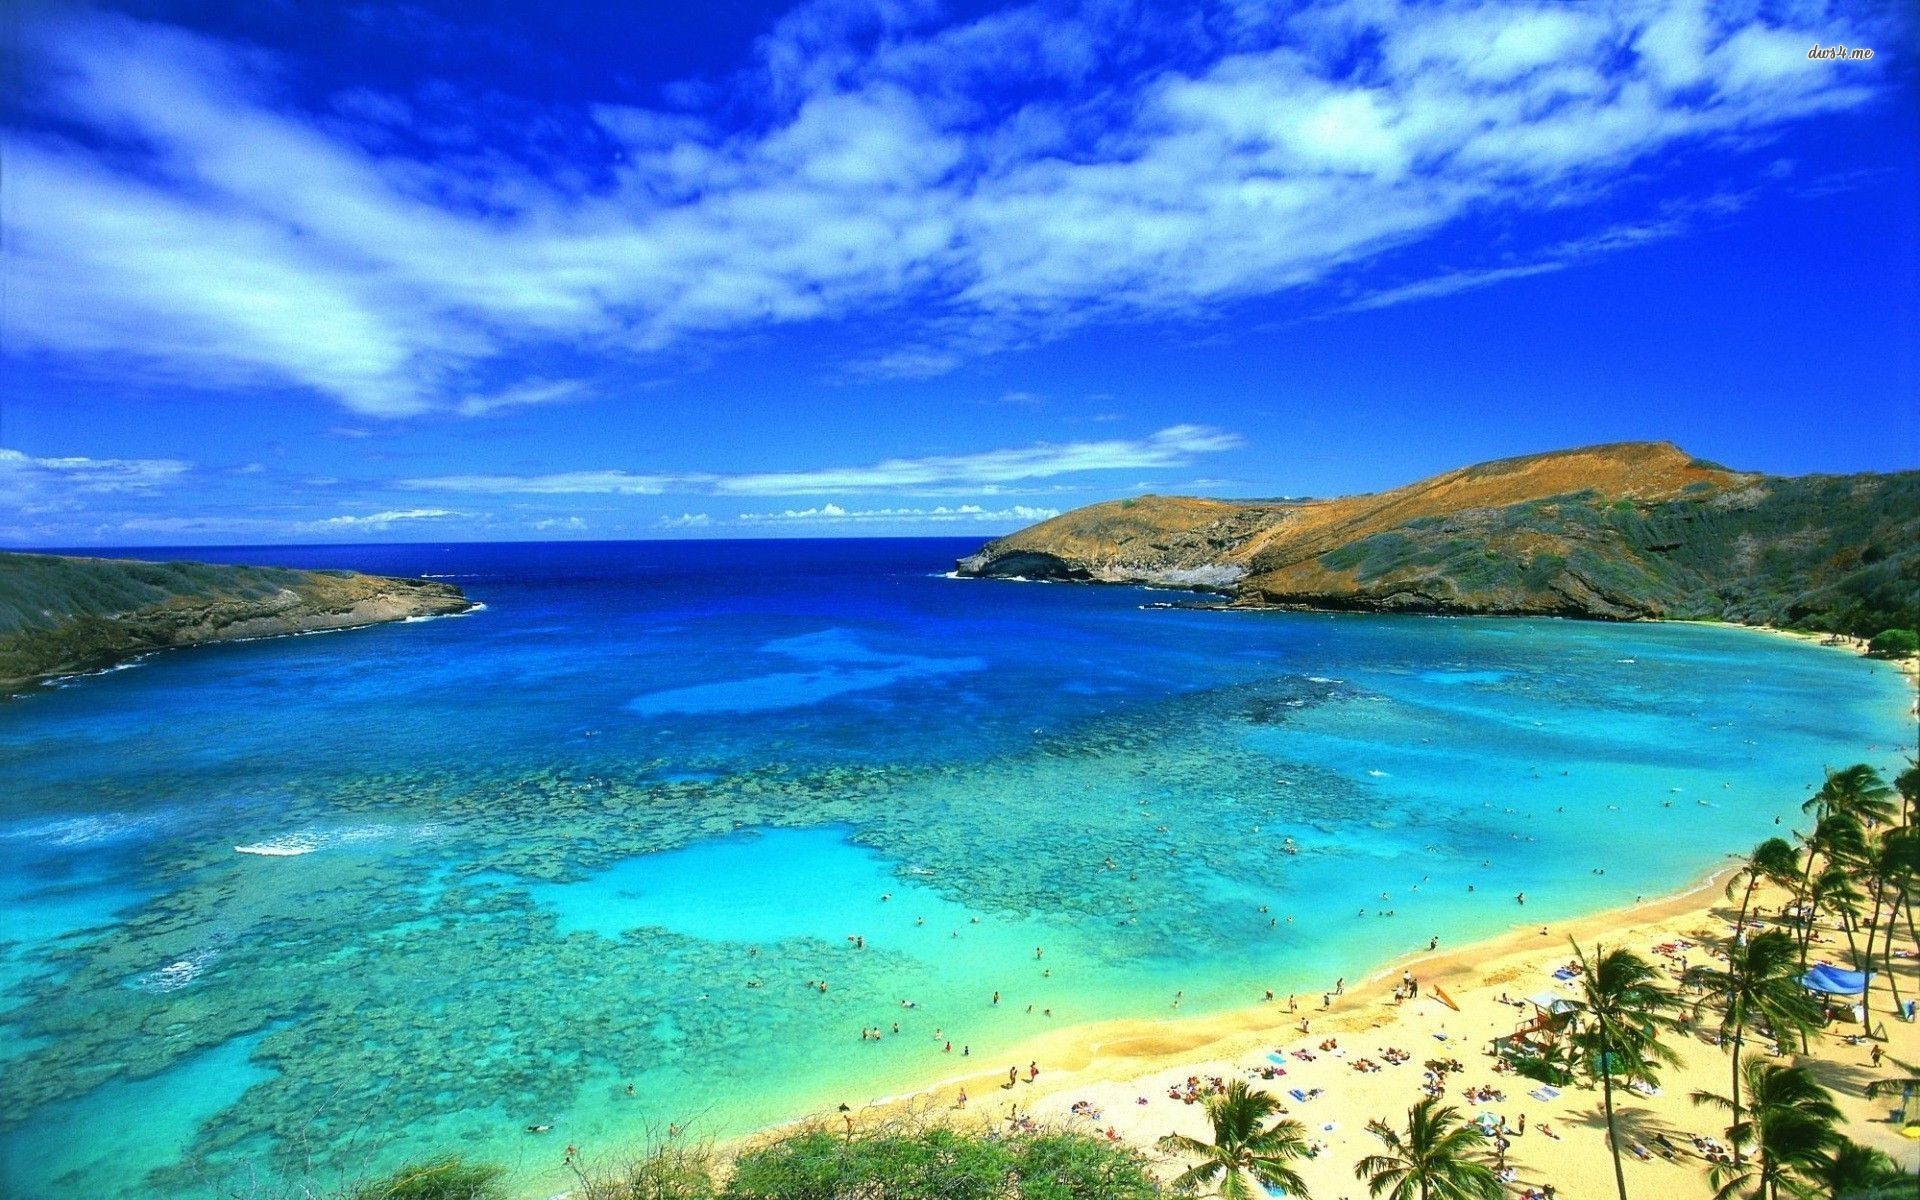 1920x1200 ... Tag: 4K Ultra HD Hawaii Wallpapers, Backgrounds and Pictures for Free,  Delena Weese ...